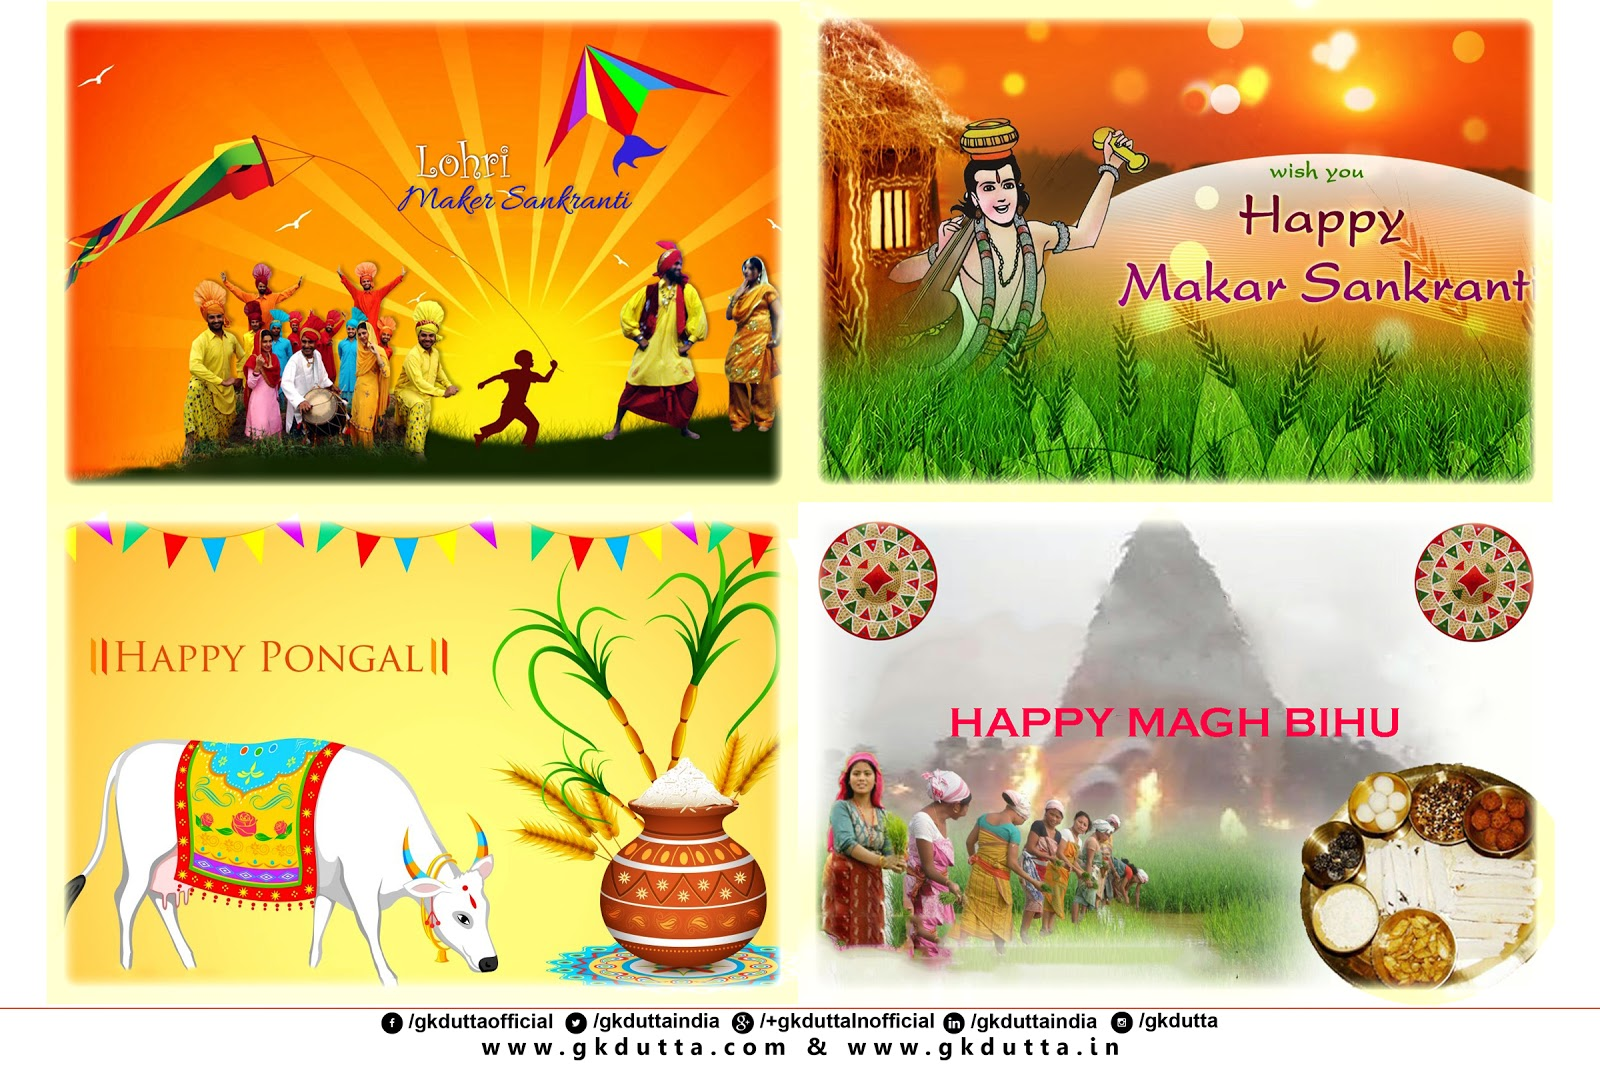 Greetings On The Eve Of Lohri Makar Sankranti Pongal And Magh Bihu